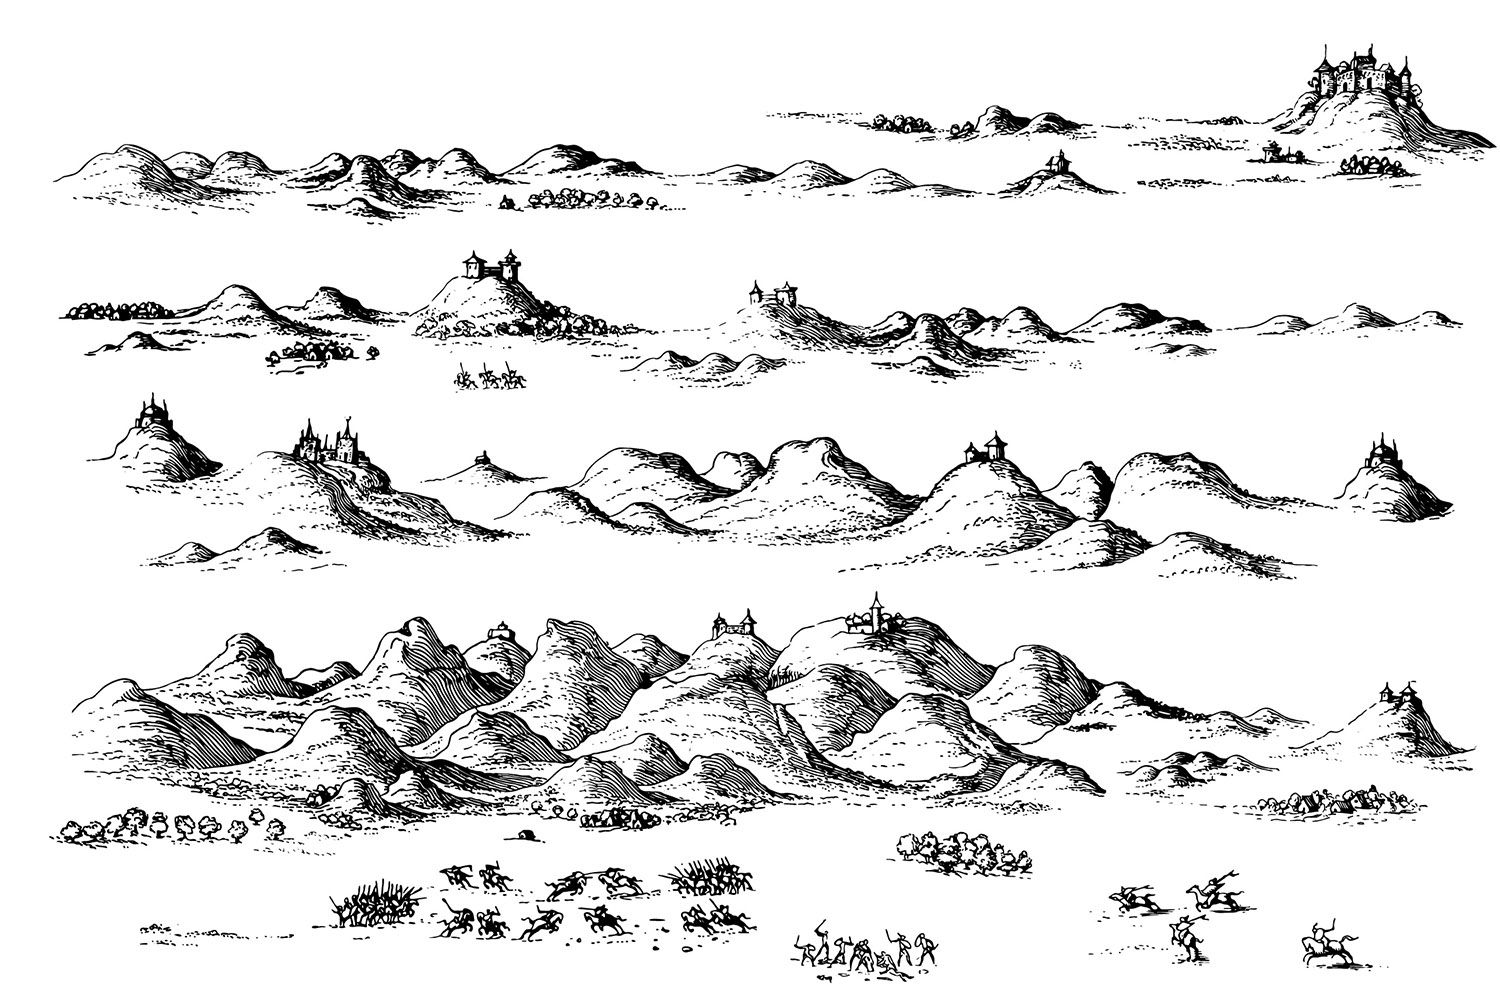 Fantasy Map Icons Symbols Map Cartography Create Your Own Roleplaying Game Material W Rpg Bard Www Rpgbard Com Map Symbols Fantasy Map Fantasy World Map